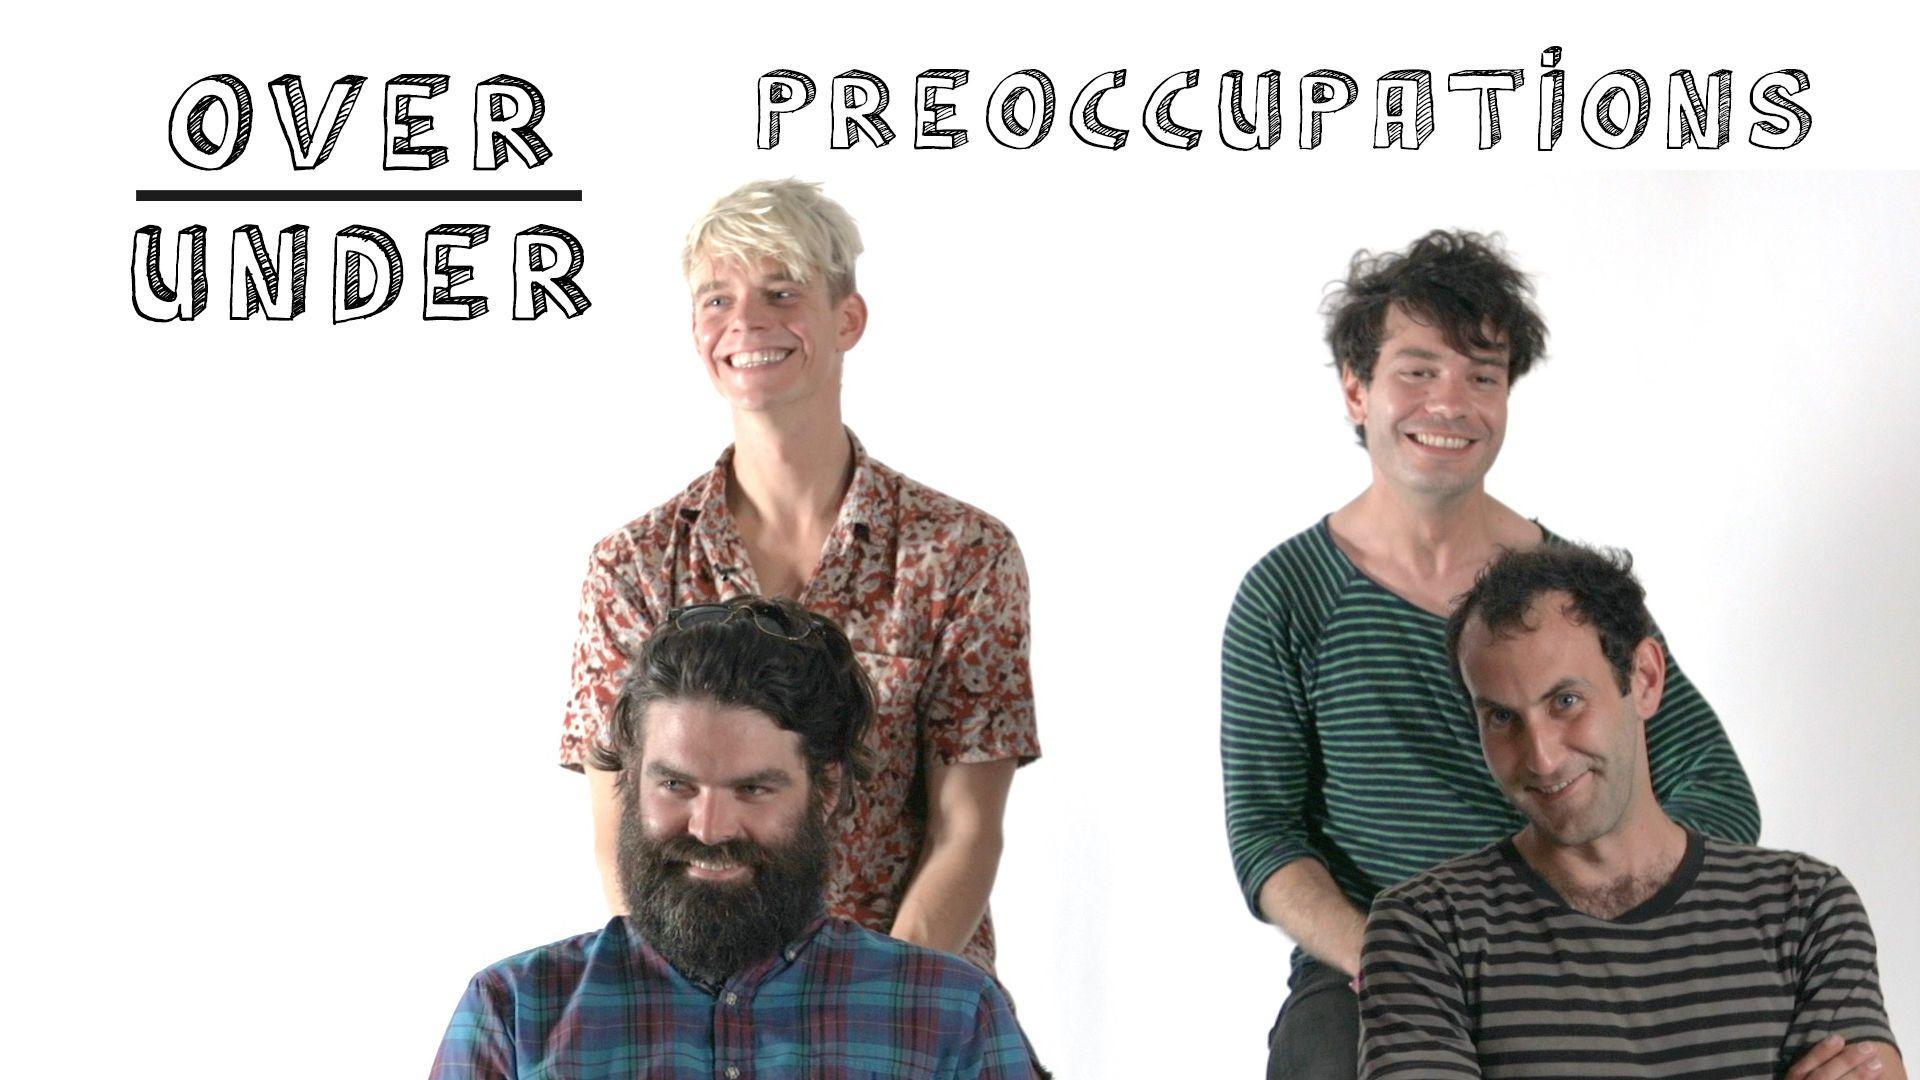 Preoccupations rate Tinder, Keg Stands and Fleshlights